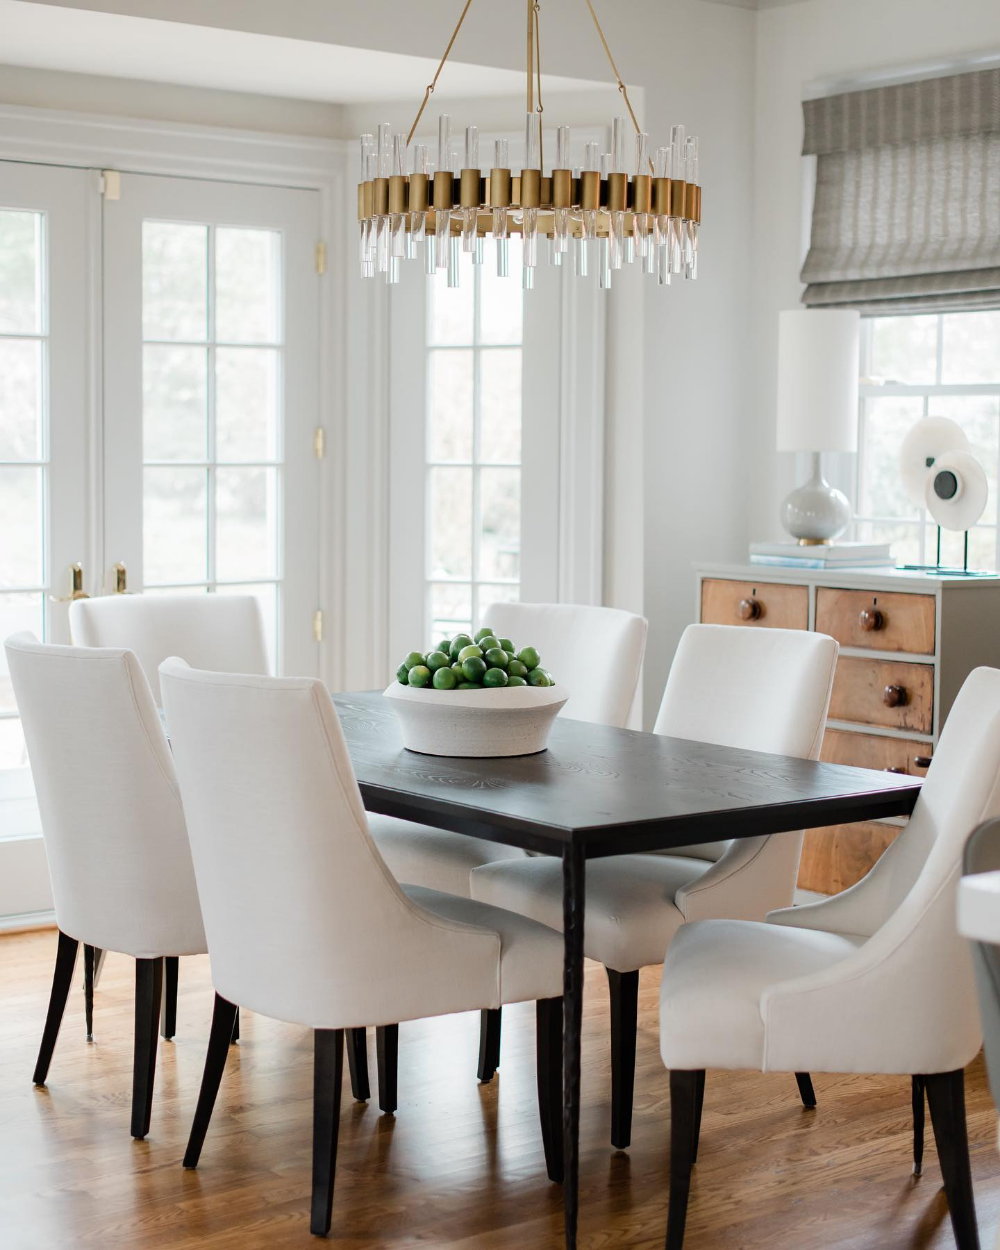 Acrylic Chandelier elevates Transitional Dining Room ...